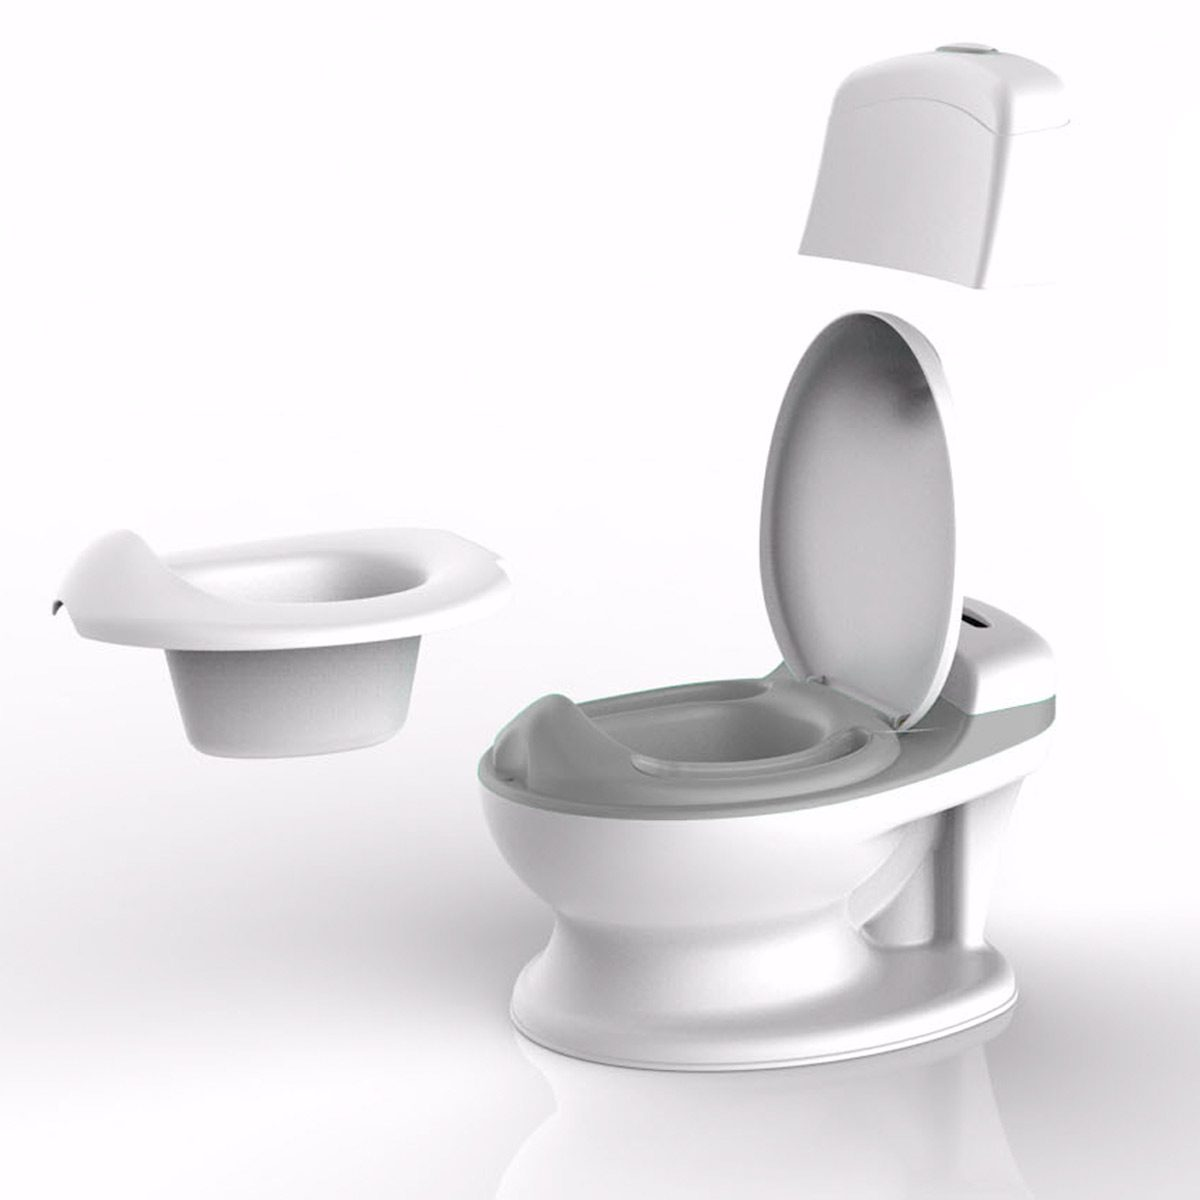 The Pote Plus is a hassle free easy to clean potty